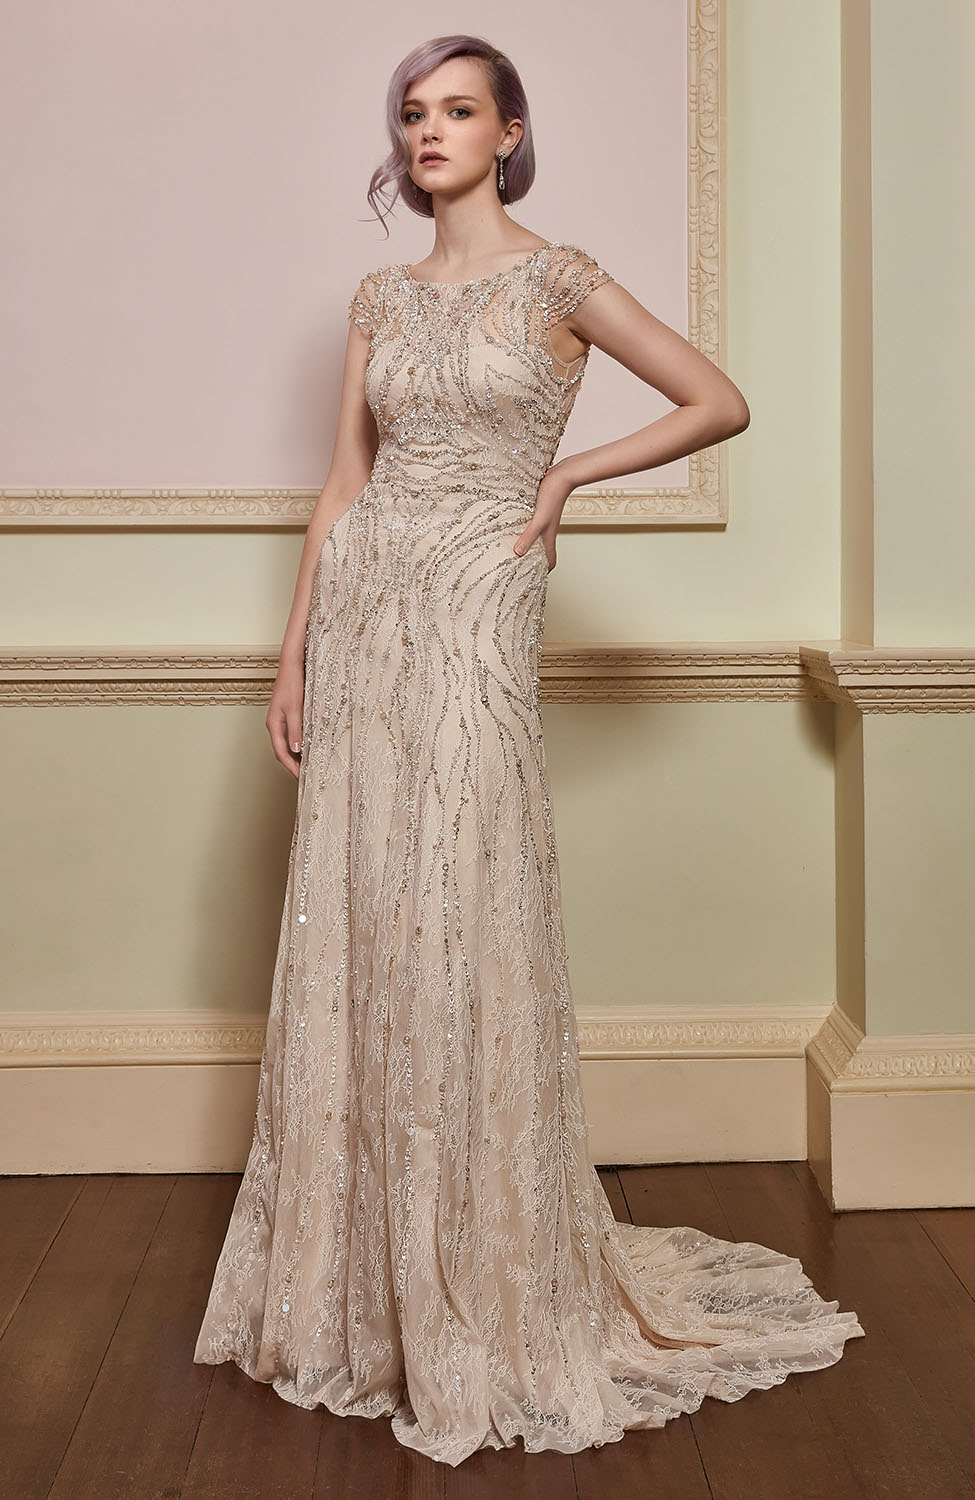 Jenny Packham Wedding Dress collection - Euphoria